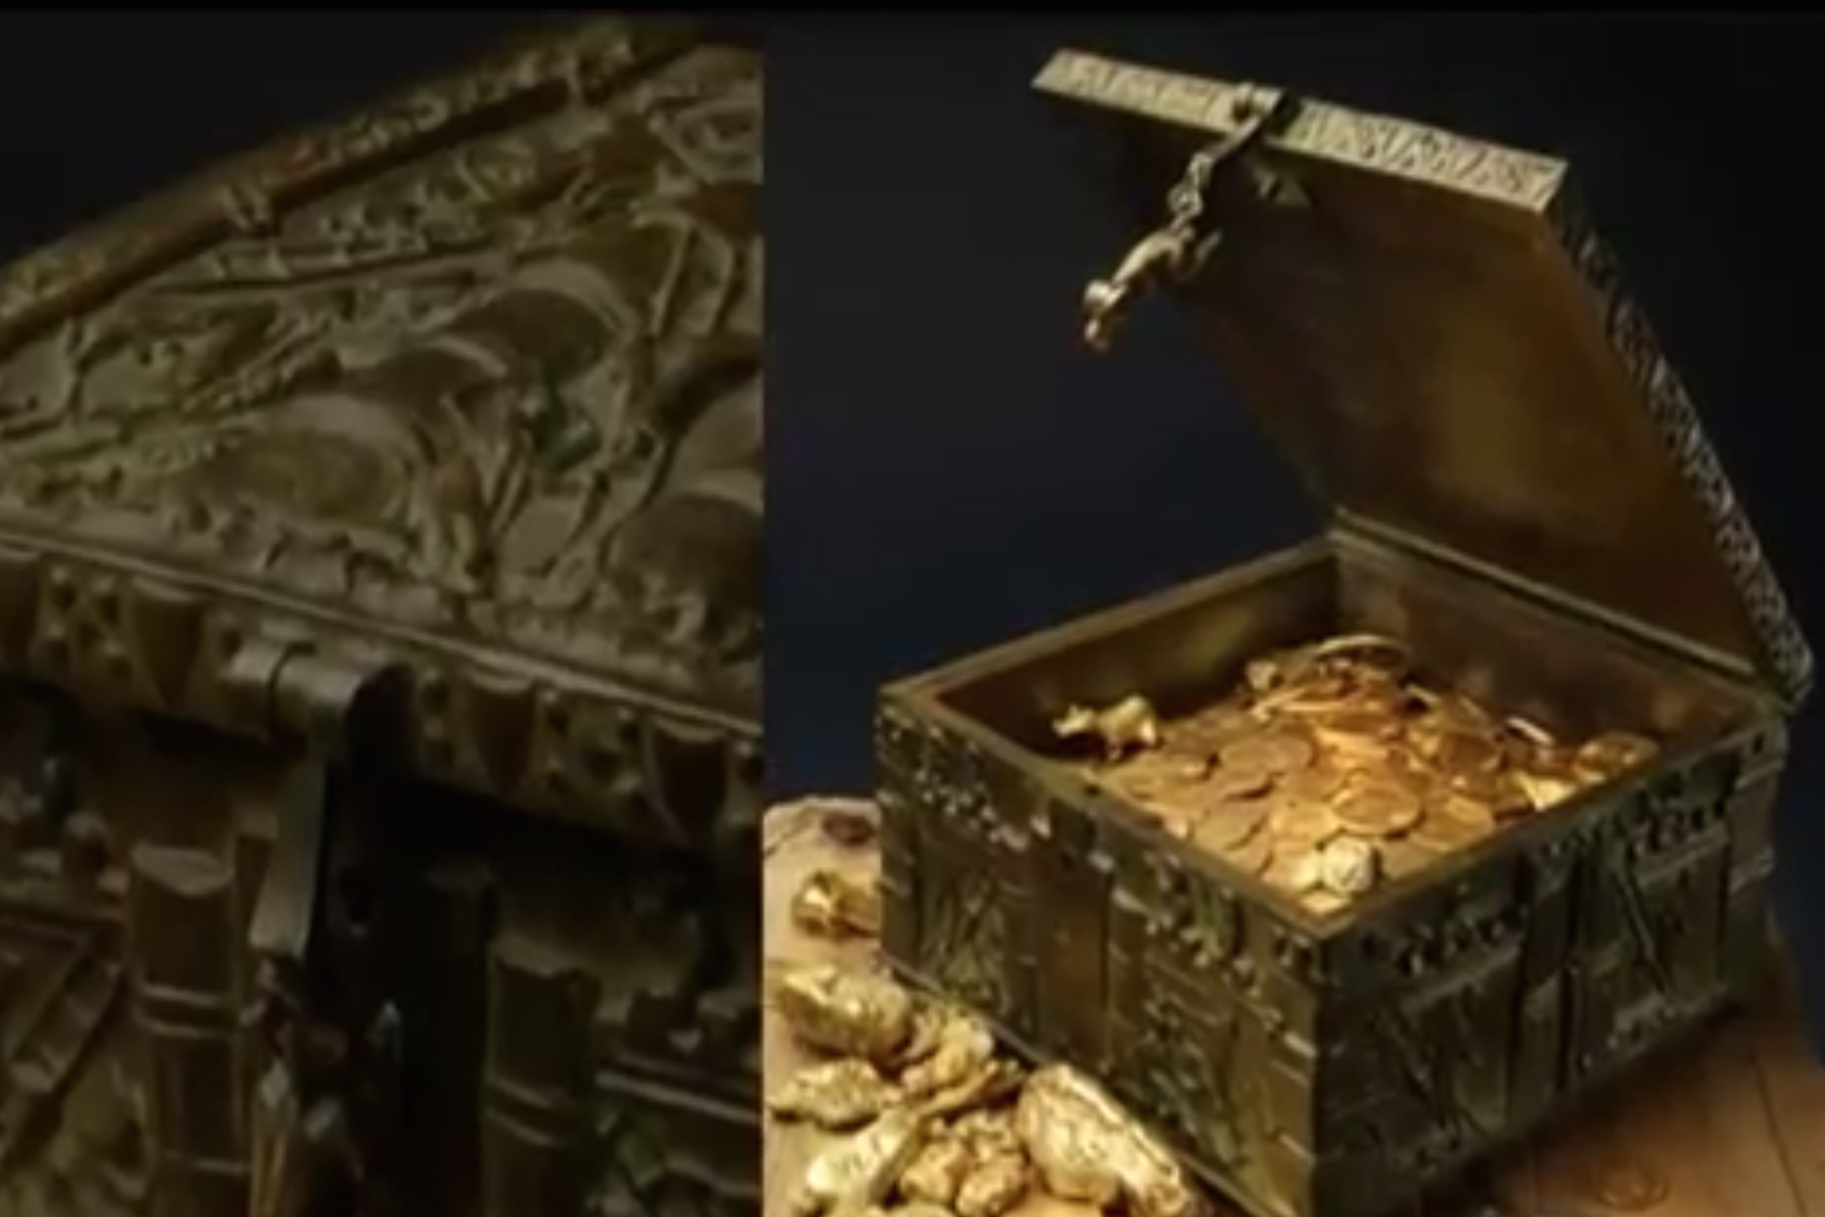 Forest Fenn's Mysterious Treasure Leads Another Man to Death